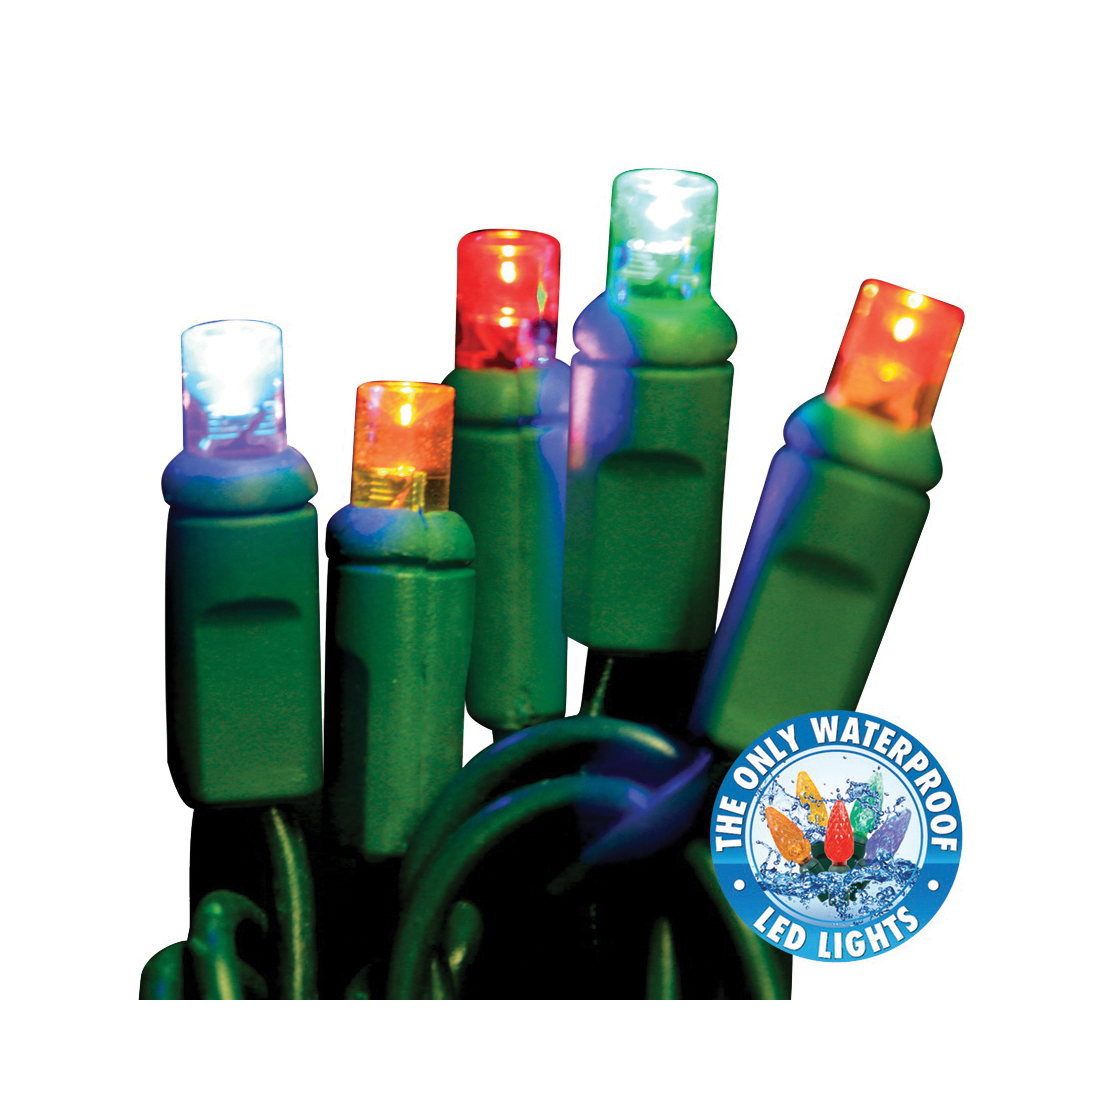 Picture of Holiday Bright Lights LEDBX-WA50-MU6 Light Set, 50 -Lamp, LED Lamp, Multi Lamp, 50000 hr Average Life, 26 ft L